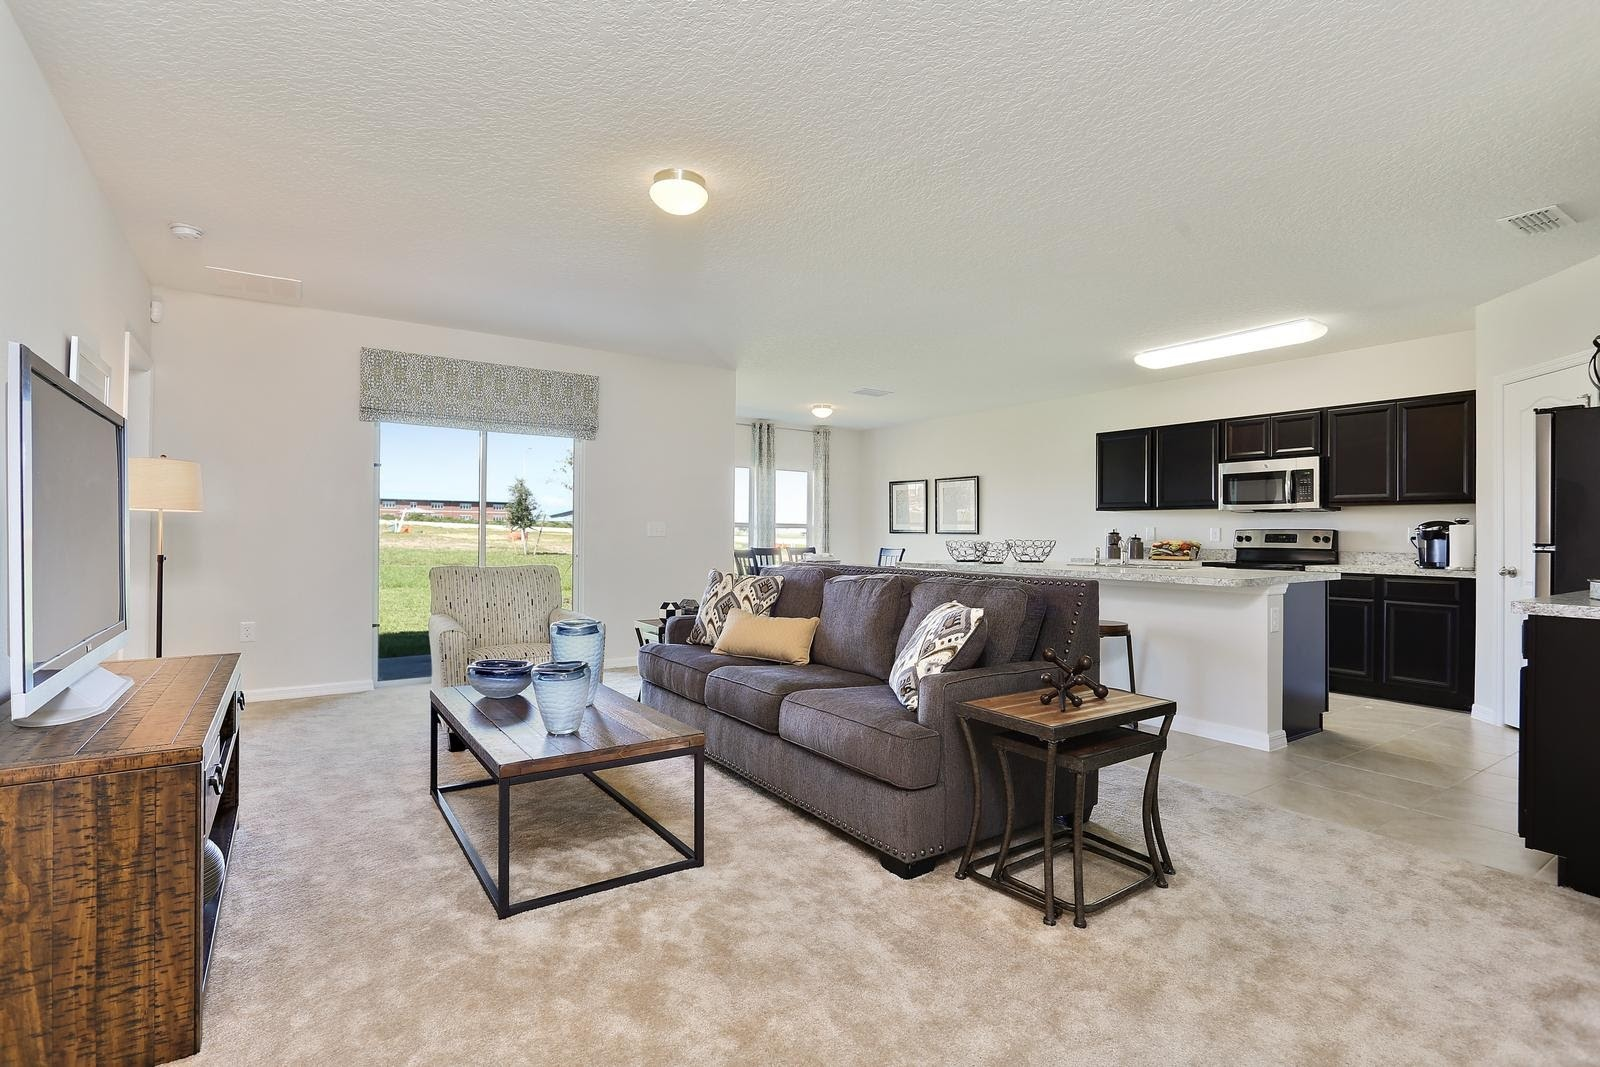 New Homes for sale at Highland Meadows in Davenport, FL within the ...